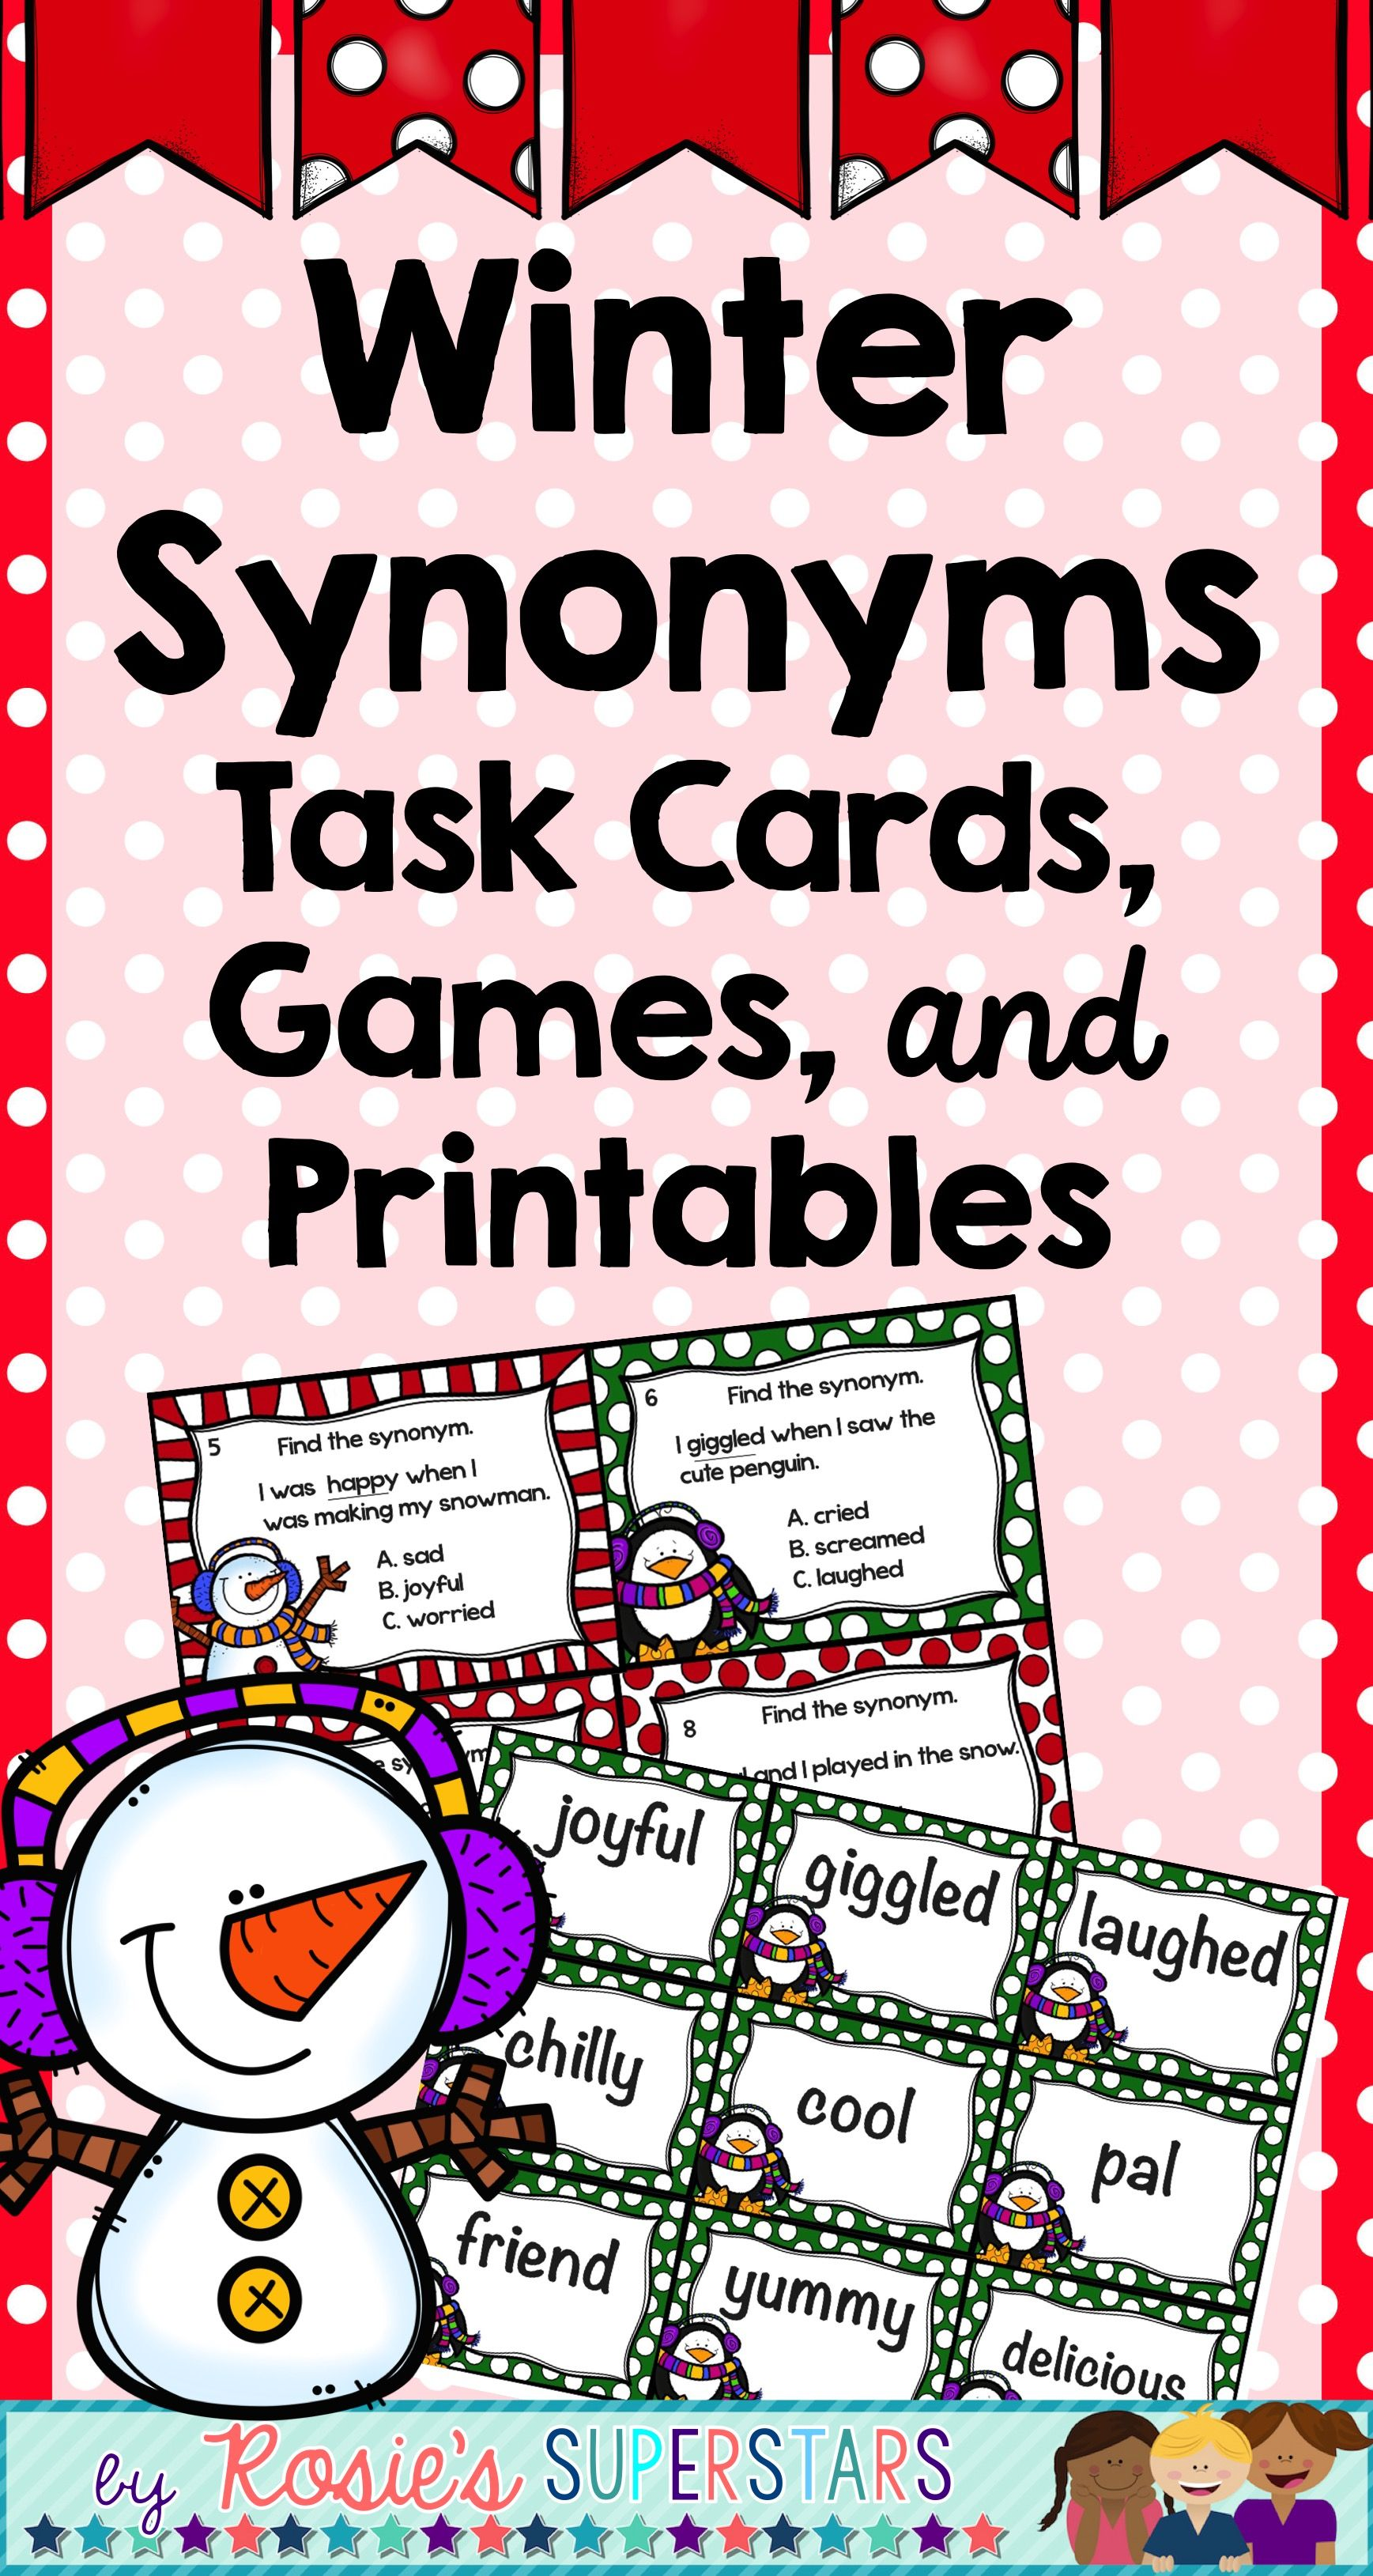 Winter Synonyms Task Cards Games And Printables